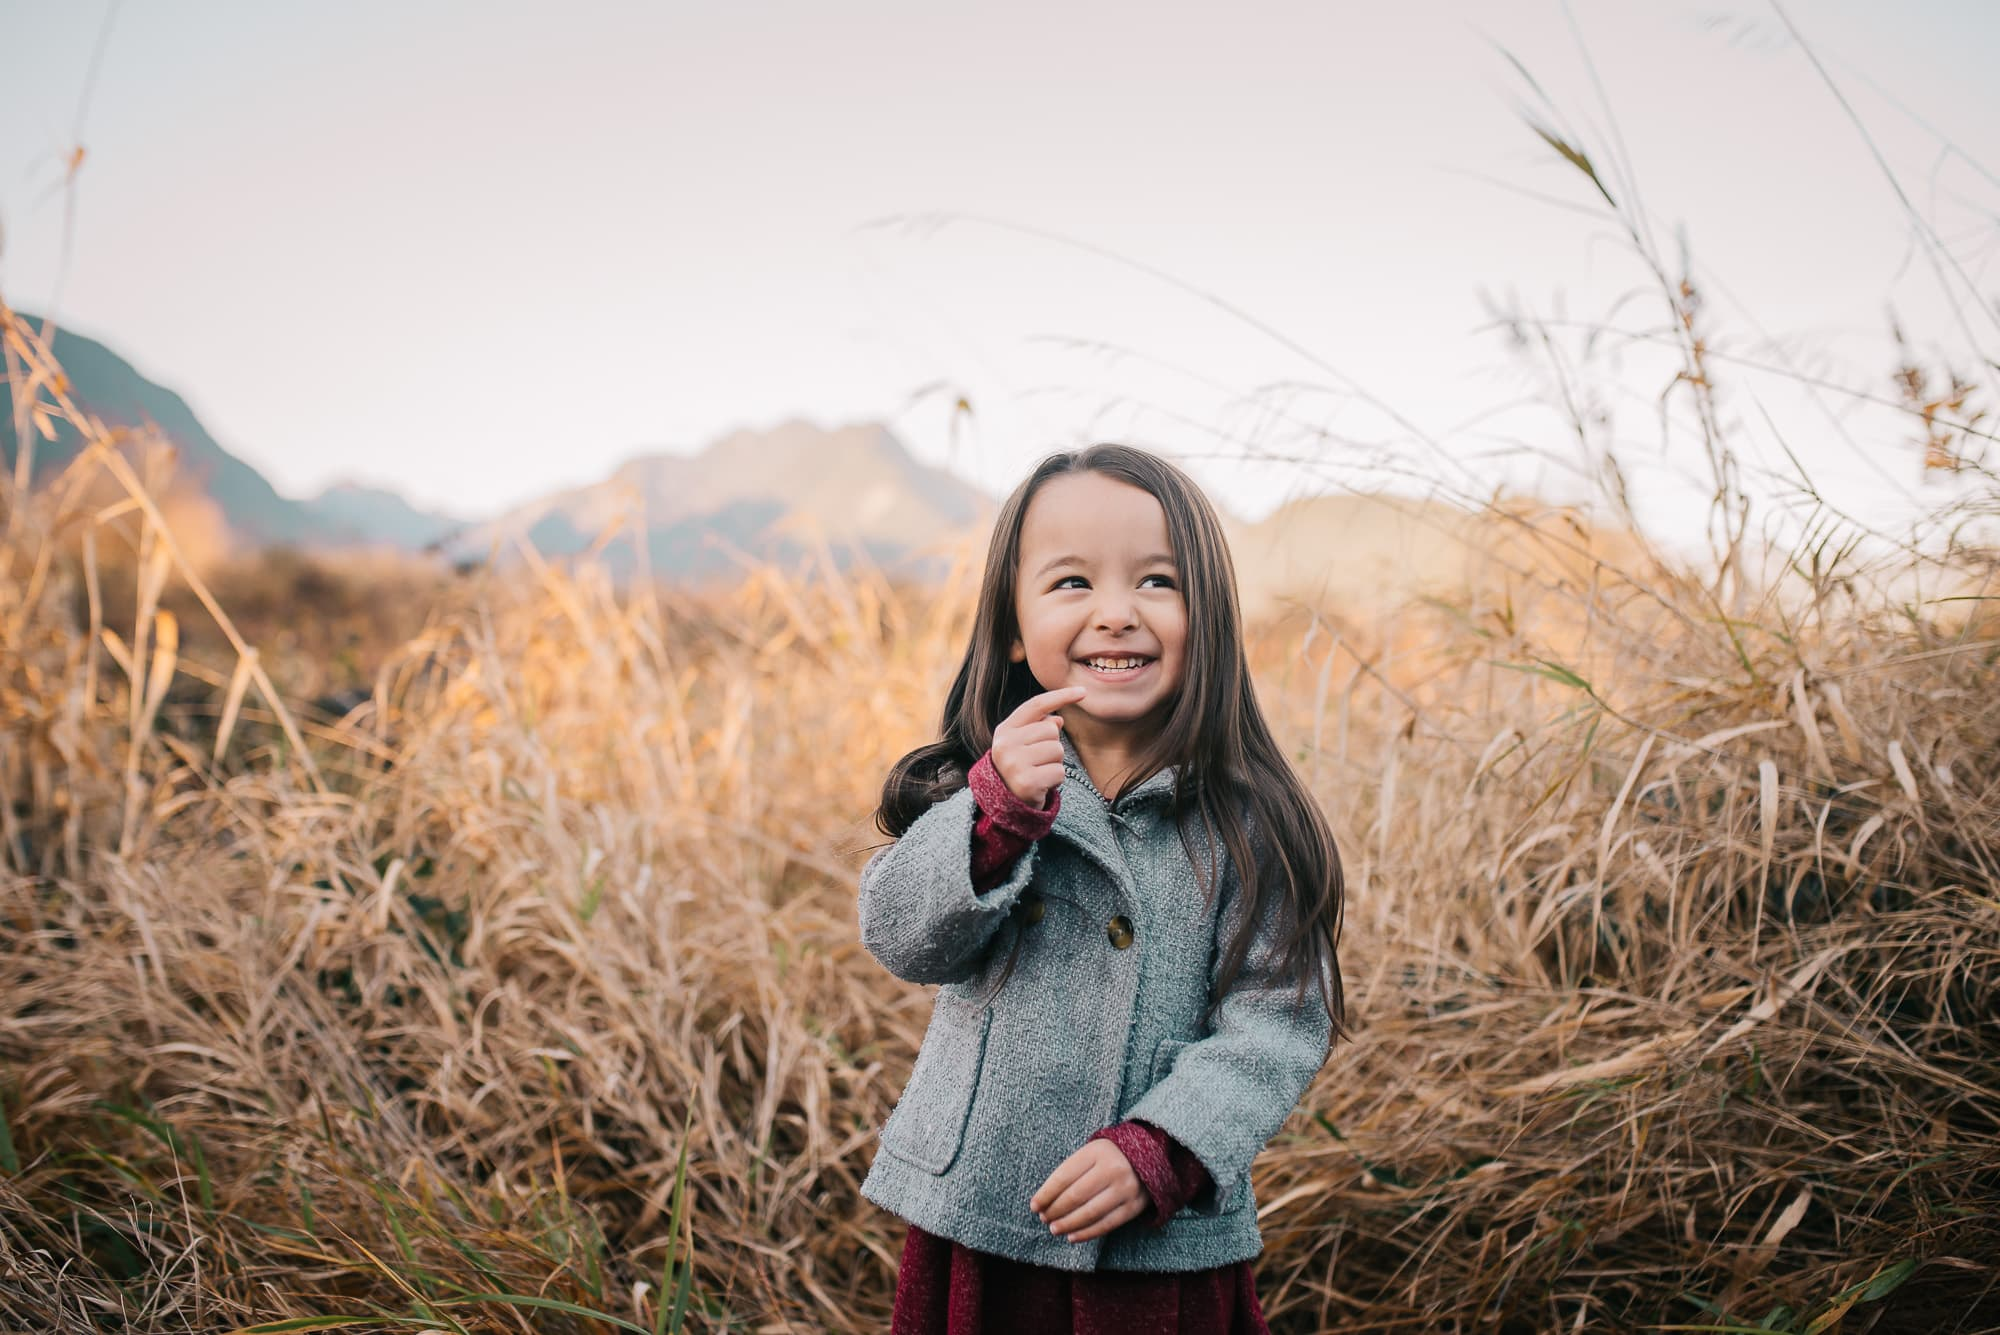 Vancouver Family Photographer makes girl giggle in reeds during family photo session